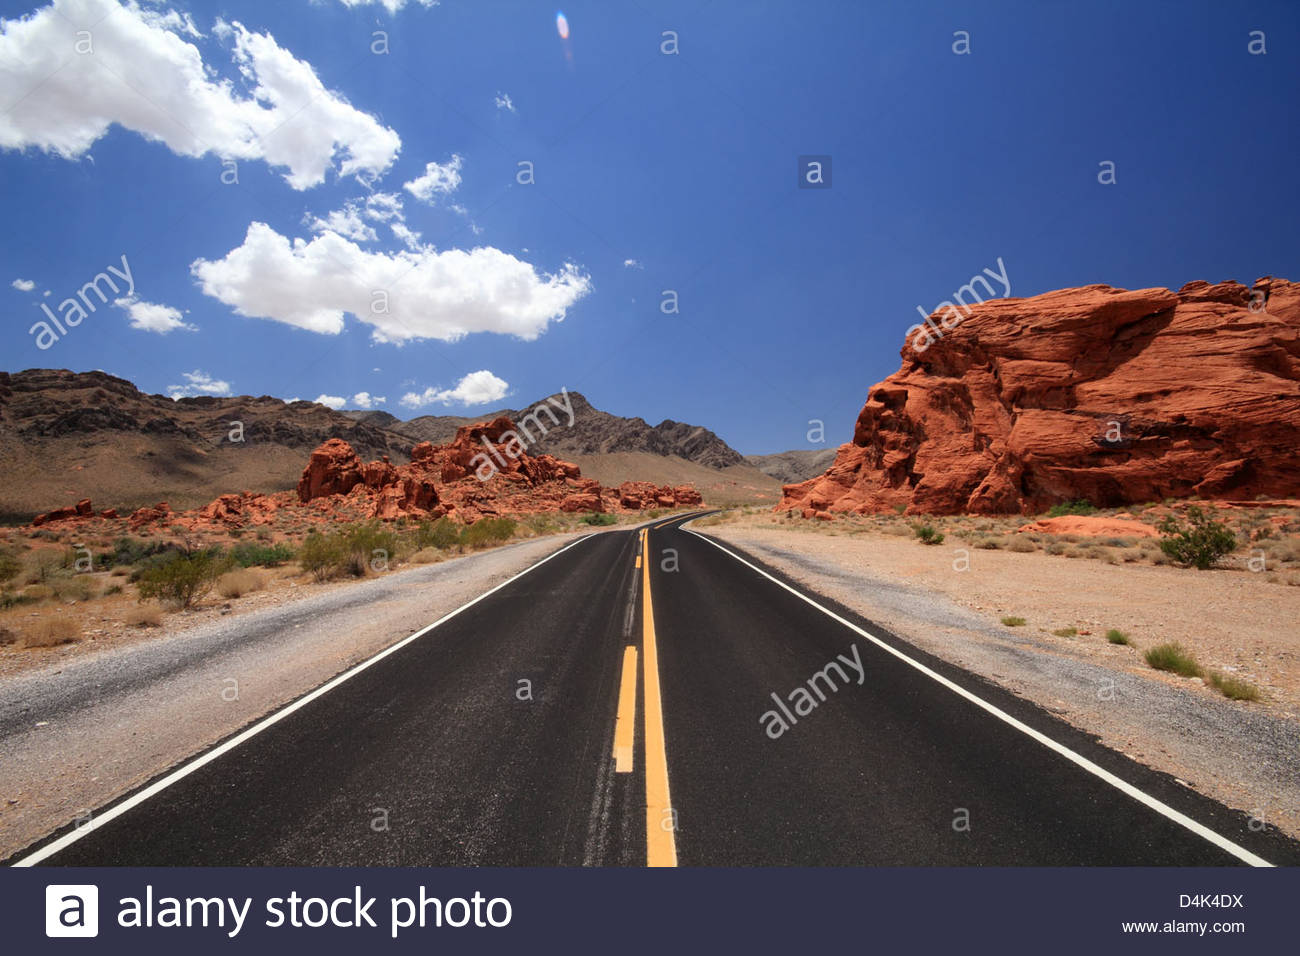 Rural road and red rock formations - Stock Image